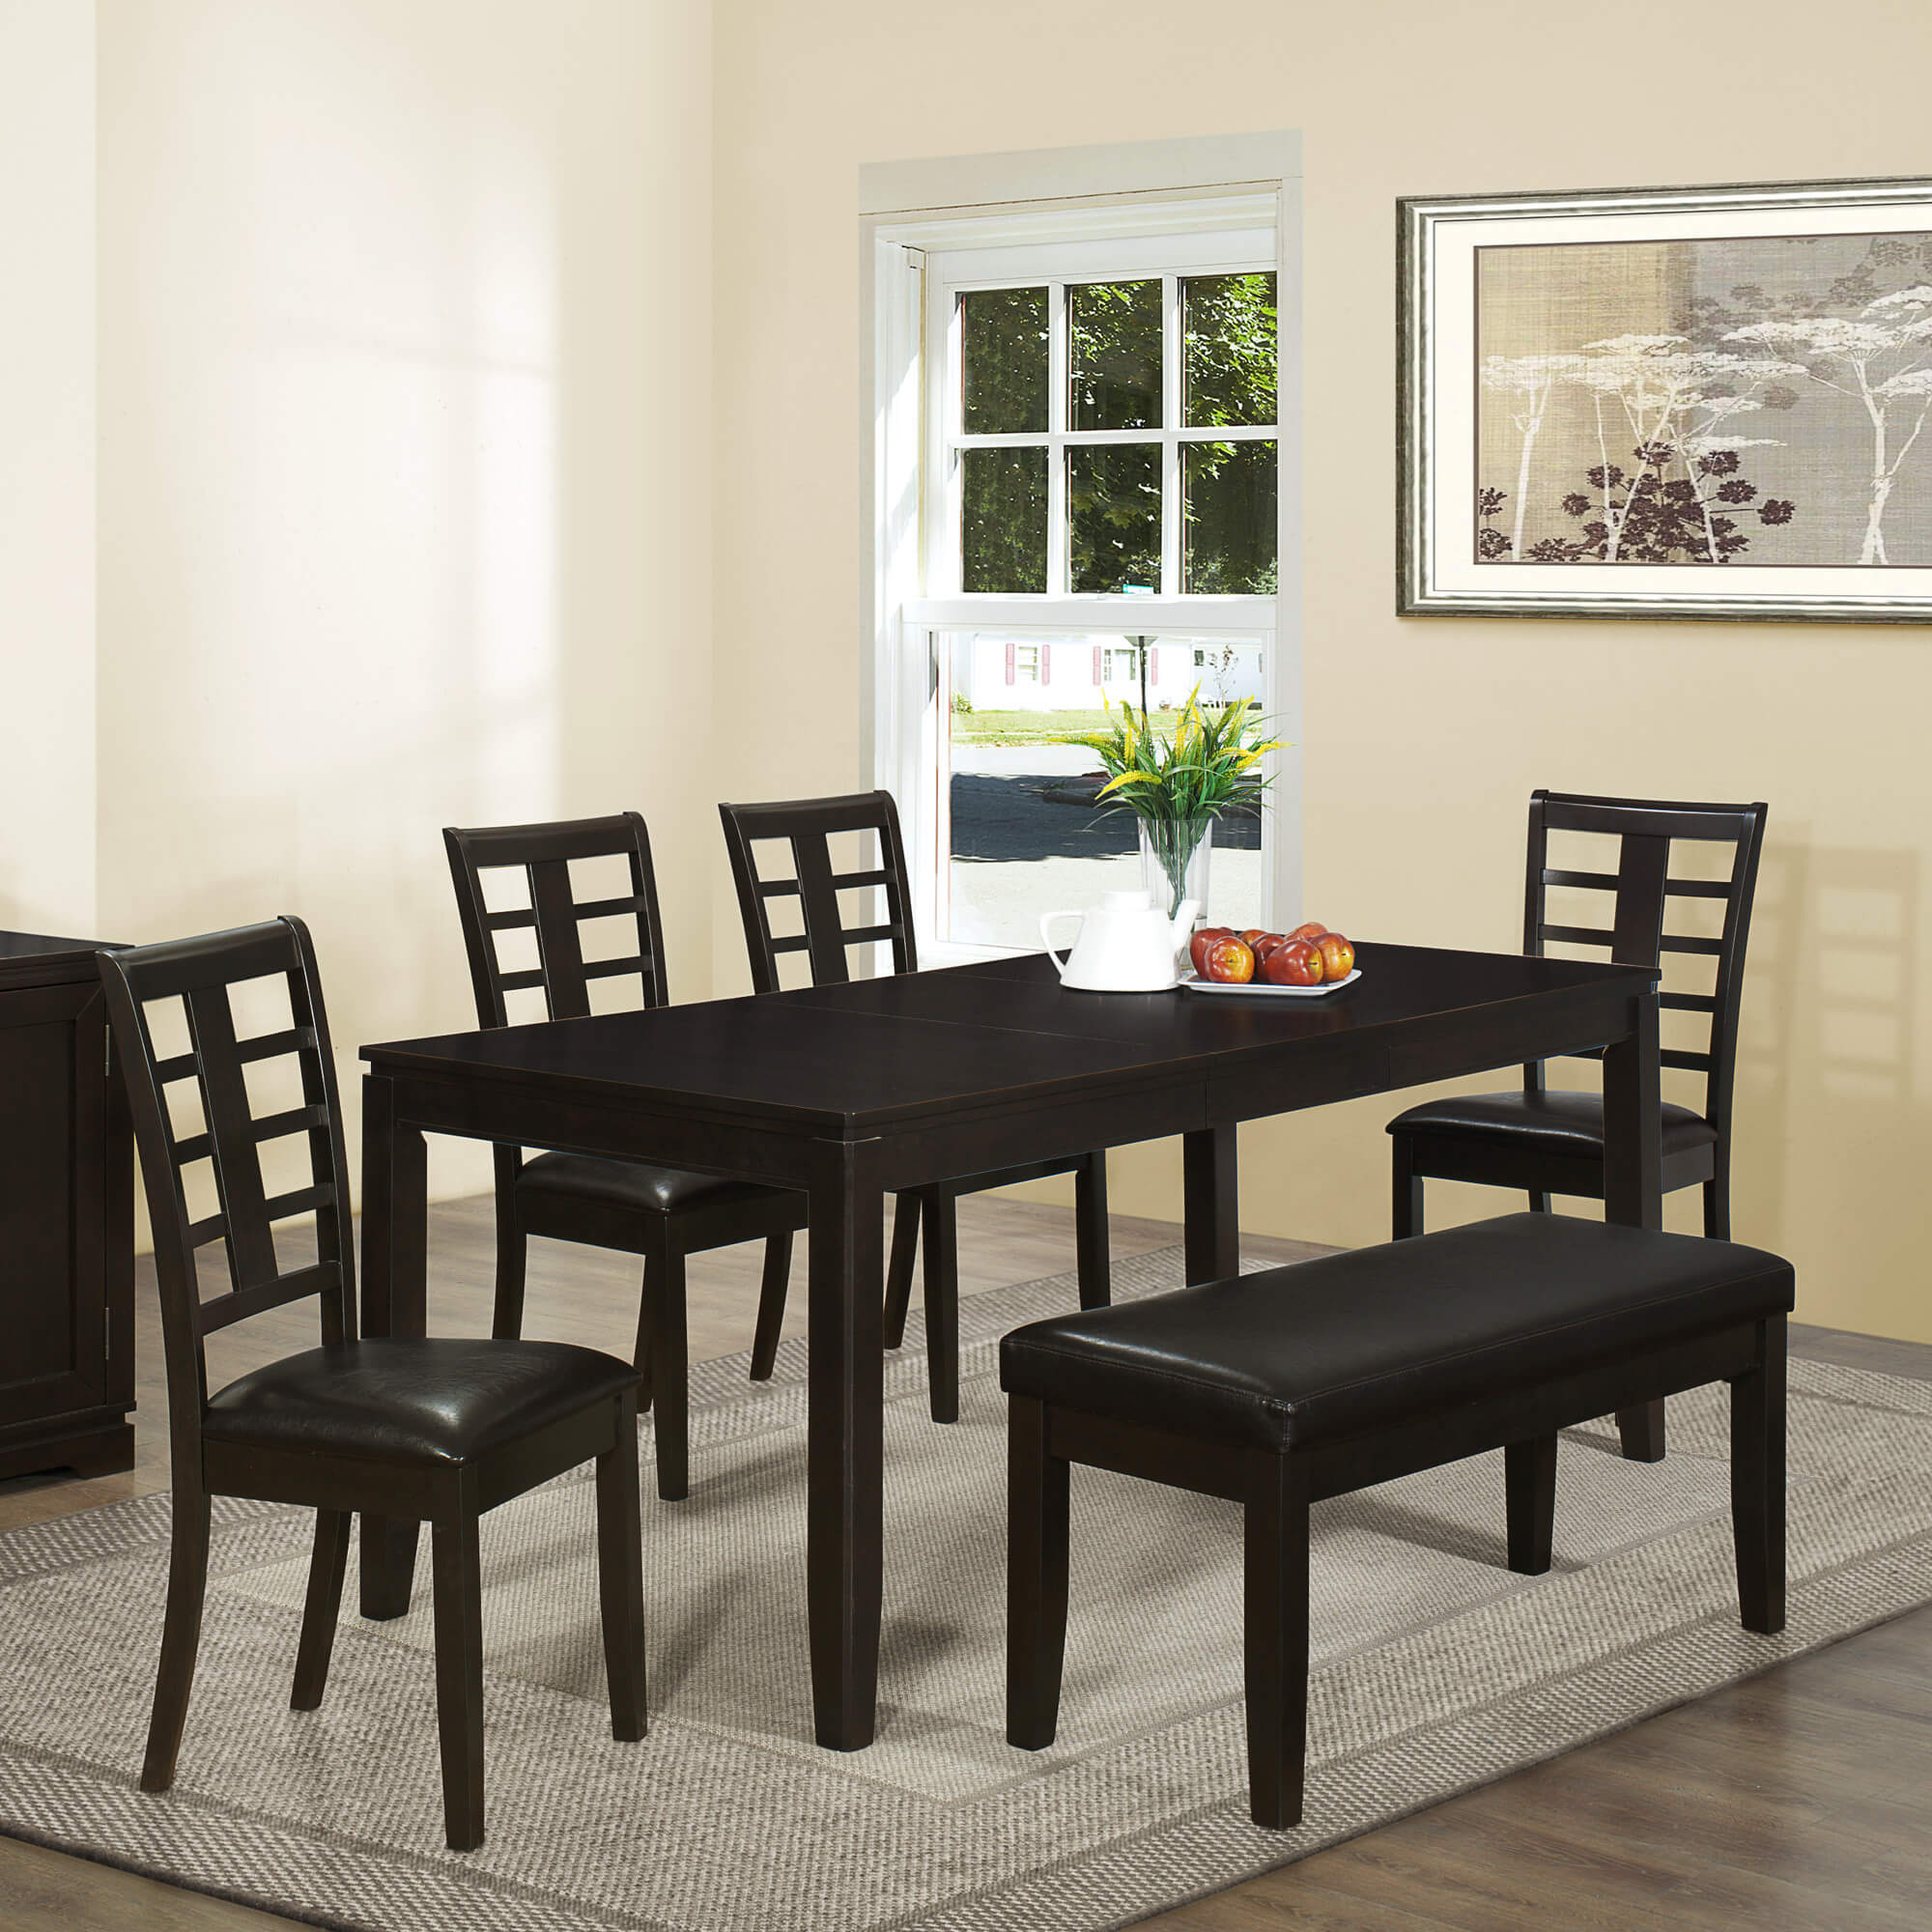 26 Dining Room Sets  Big and Small  with Bench Seating  2018  Contemporary Asian inspired dining set with bench is a good size being able  to accommodate